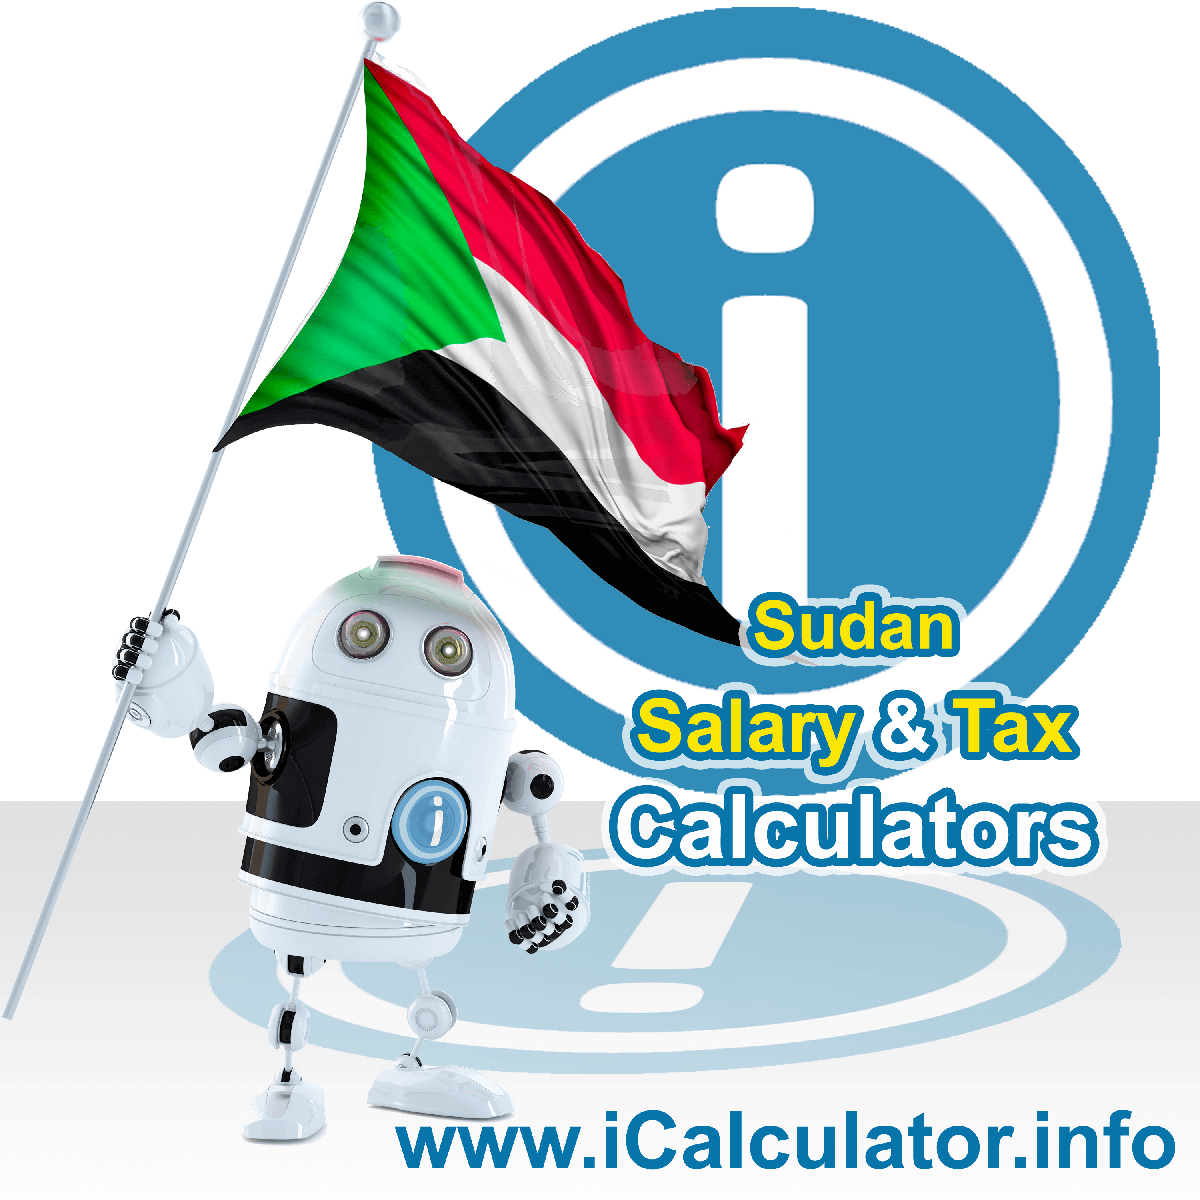 Sudan Wage Calculator. This image shows the Sudan flag and information relating to the tax formula for the Sudan Tax Calculator